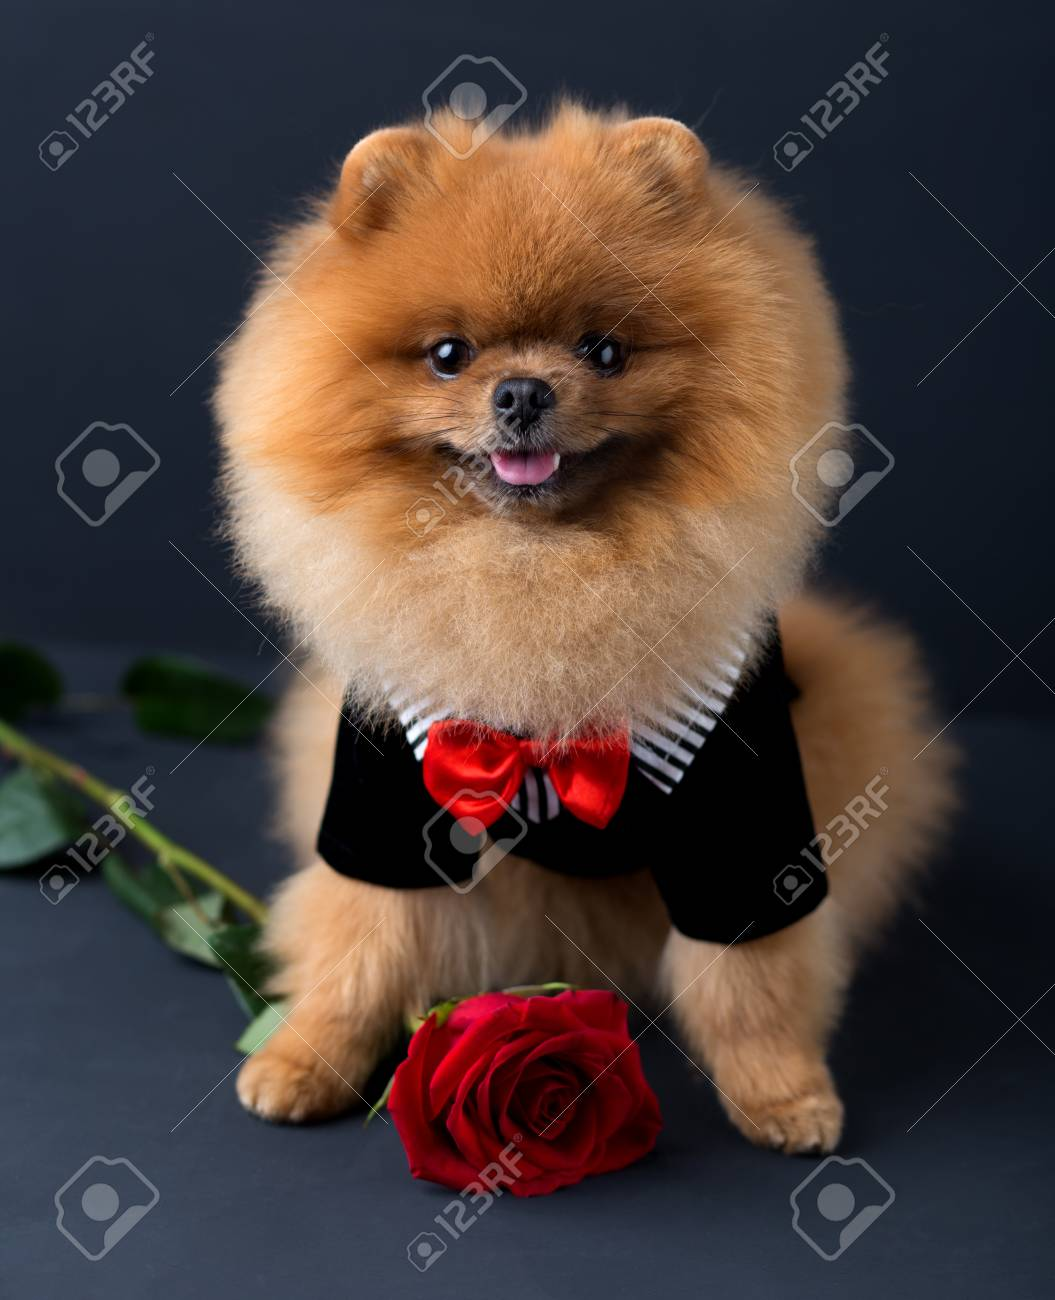 Cosmopolitan A Red Rose On Stock Dog A Suit A Suit Pomeranian Dog Suit Print Dog A Red Rose On Portrait Suit Portrait A Pomeranian Dog bark post Dog In Suit